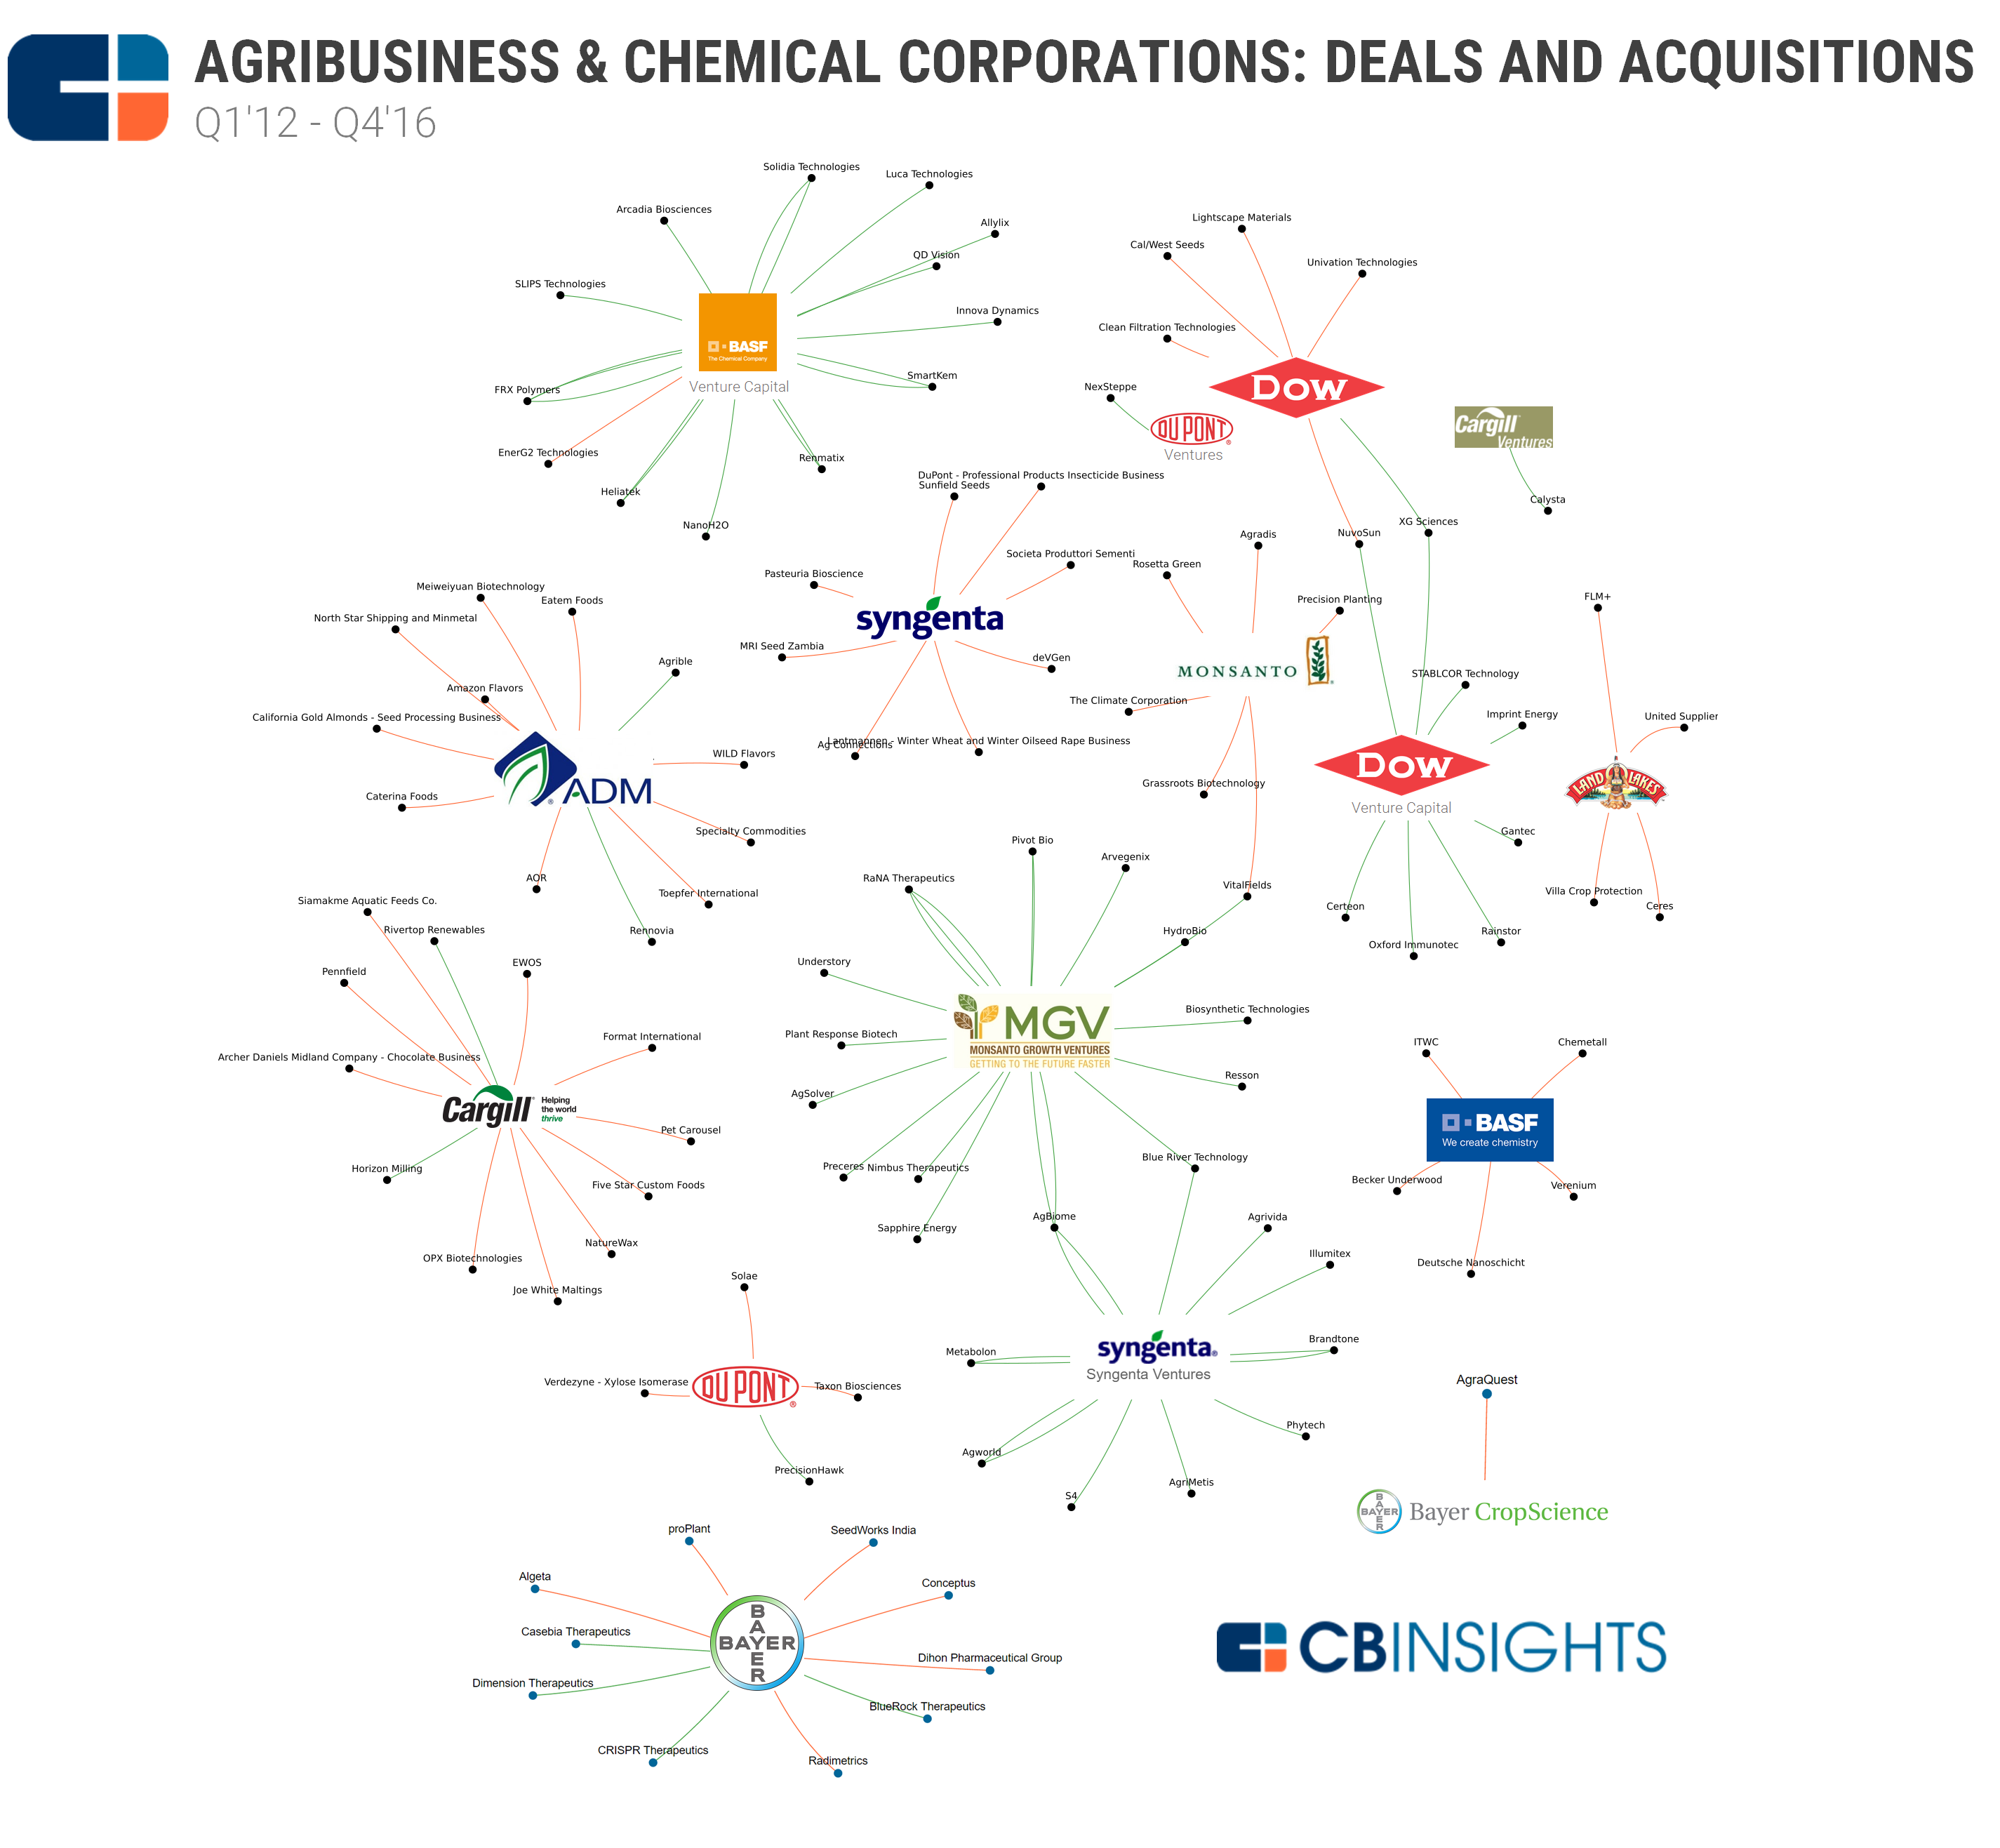 Agribusiness and Chemicals BSG